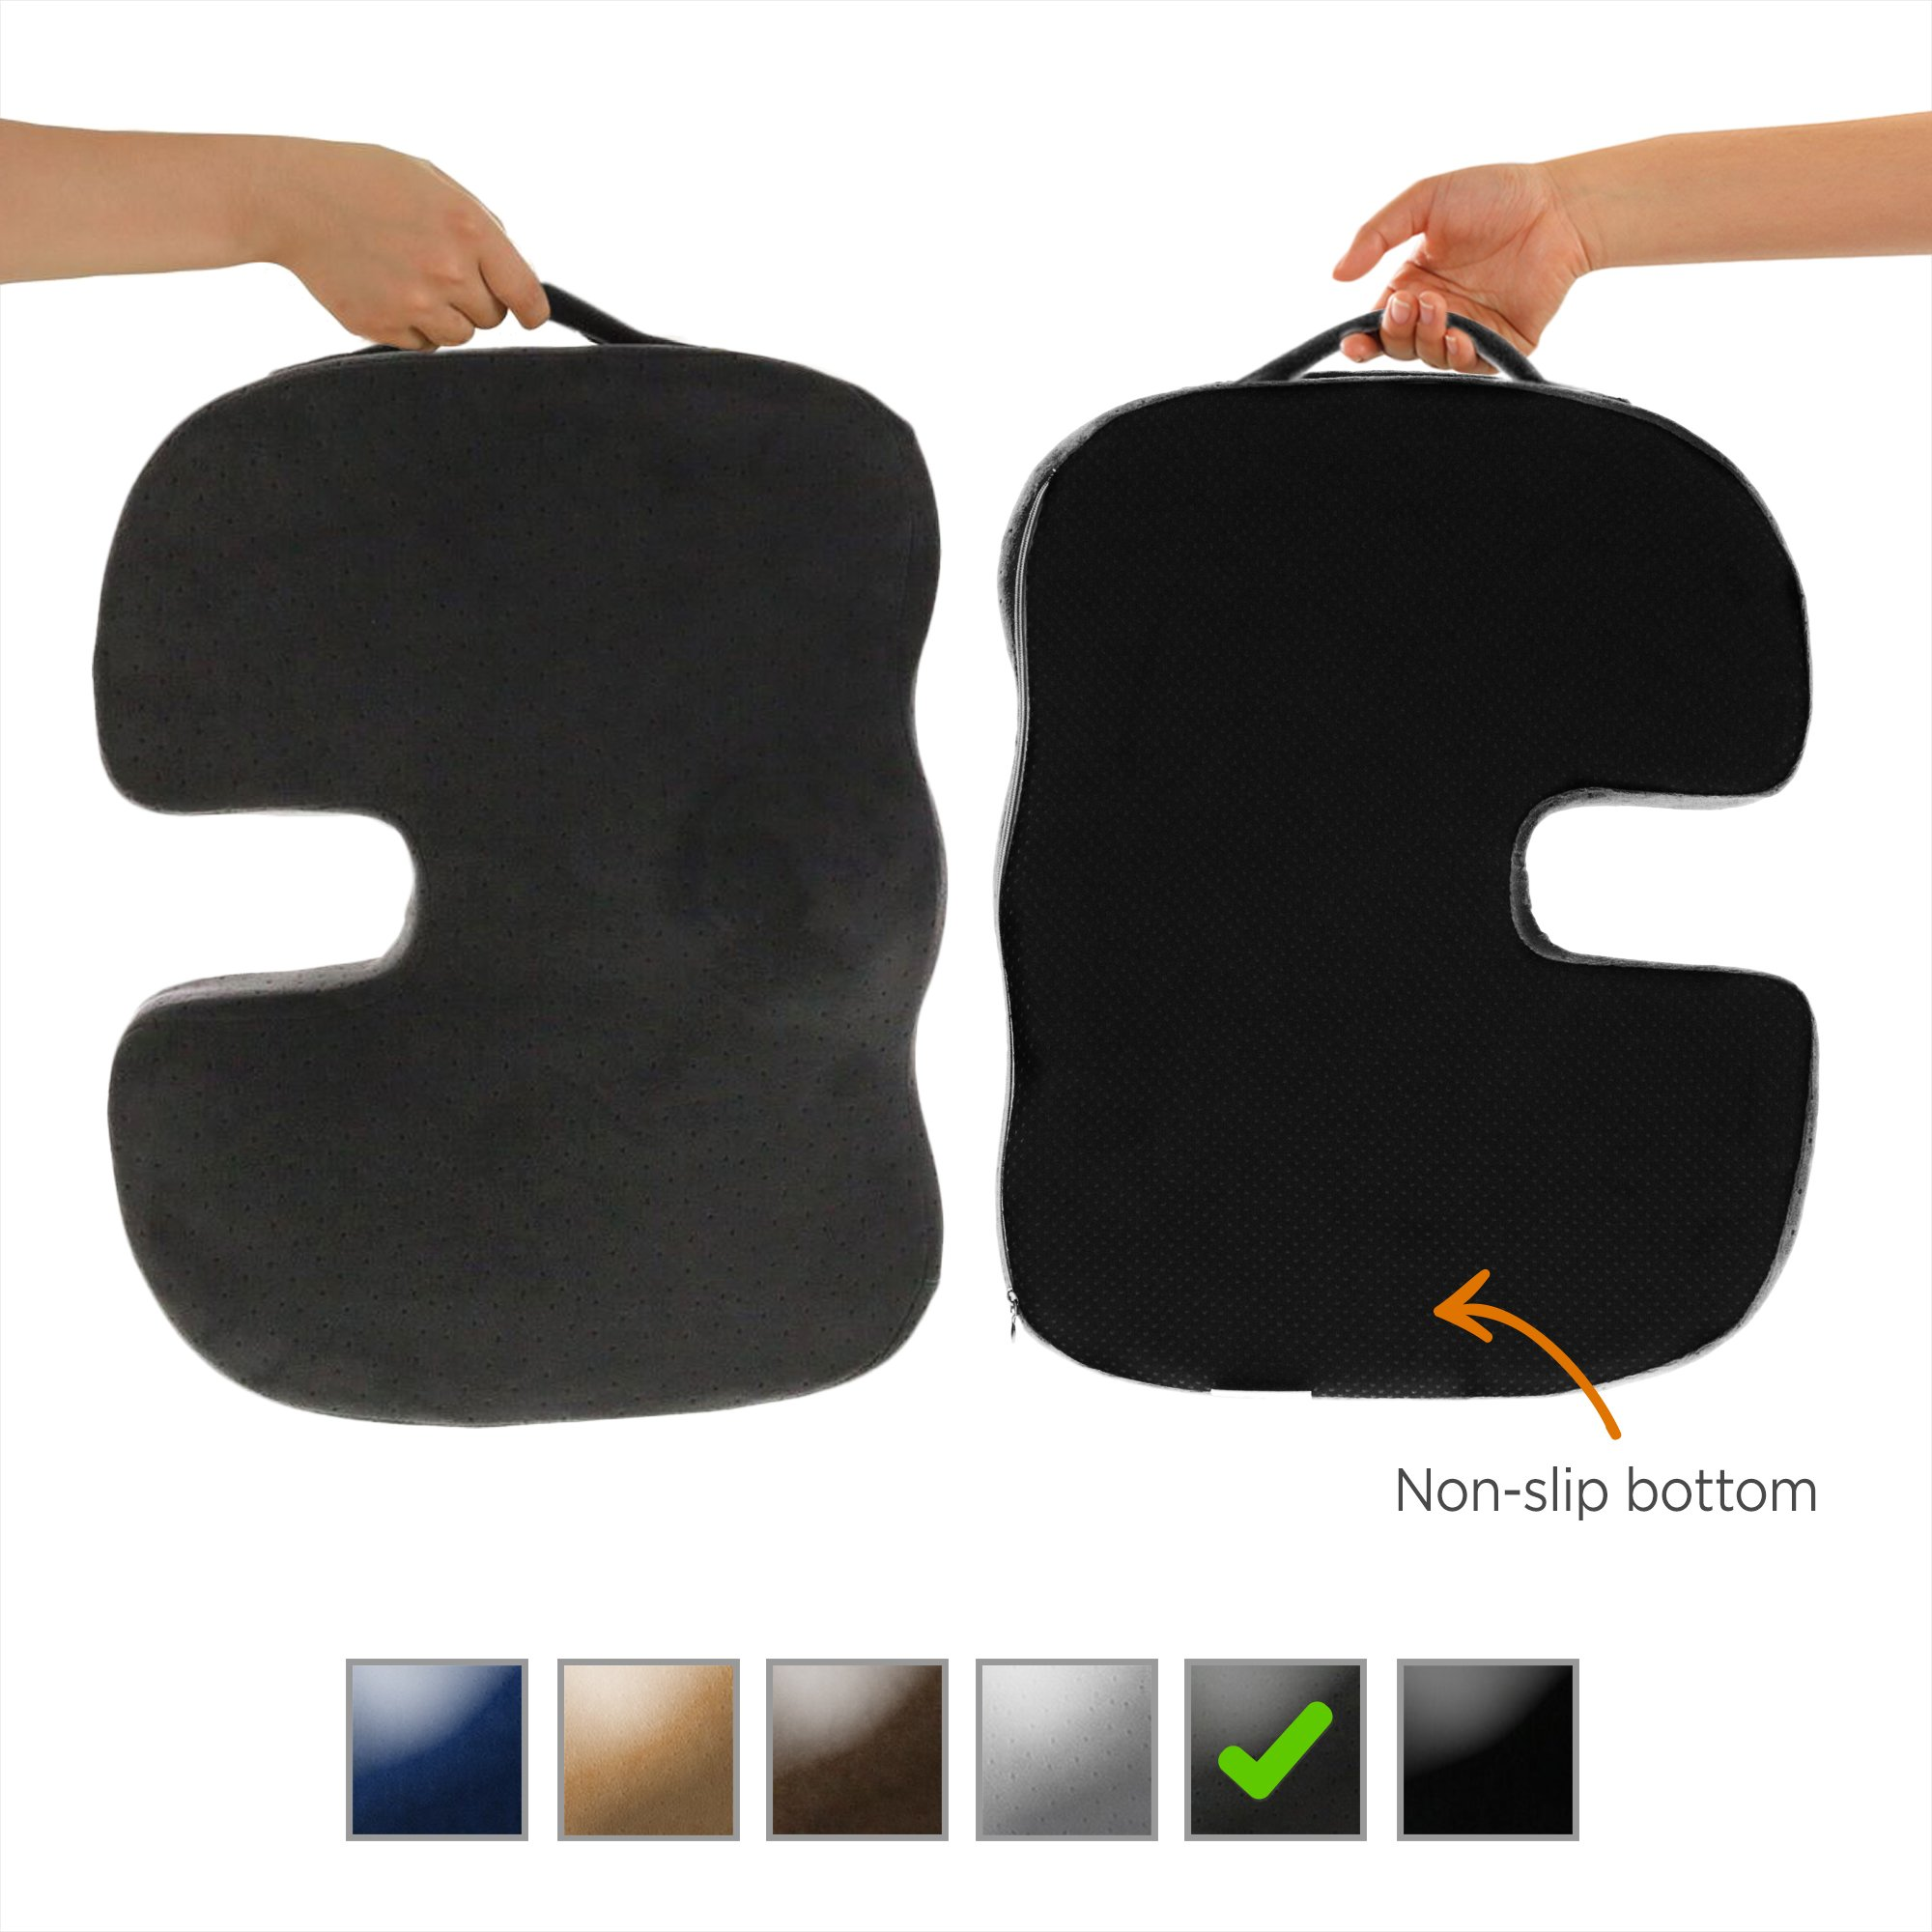 Dr. Ergo | Chiropractor Grade | Firm Orthopedic Memory Foam Seat Cushion | Coccyx, Tailbone and Sciatica Pain Relief | Non Slip Back Support Pillow for Office Chair, Car Seat and Wheelchair - Charcoal